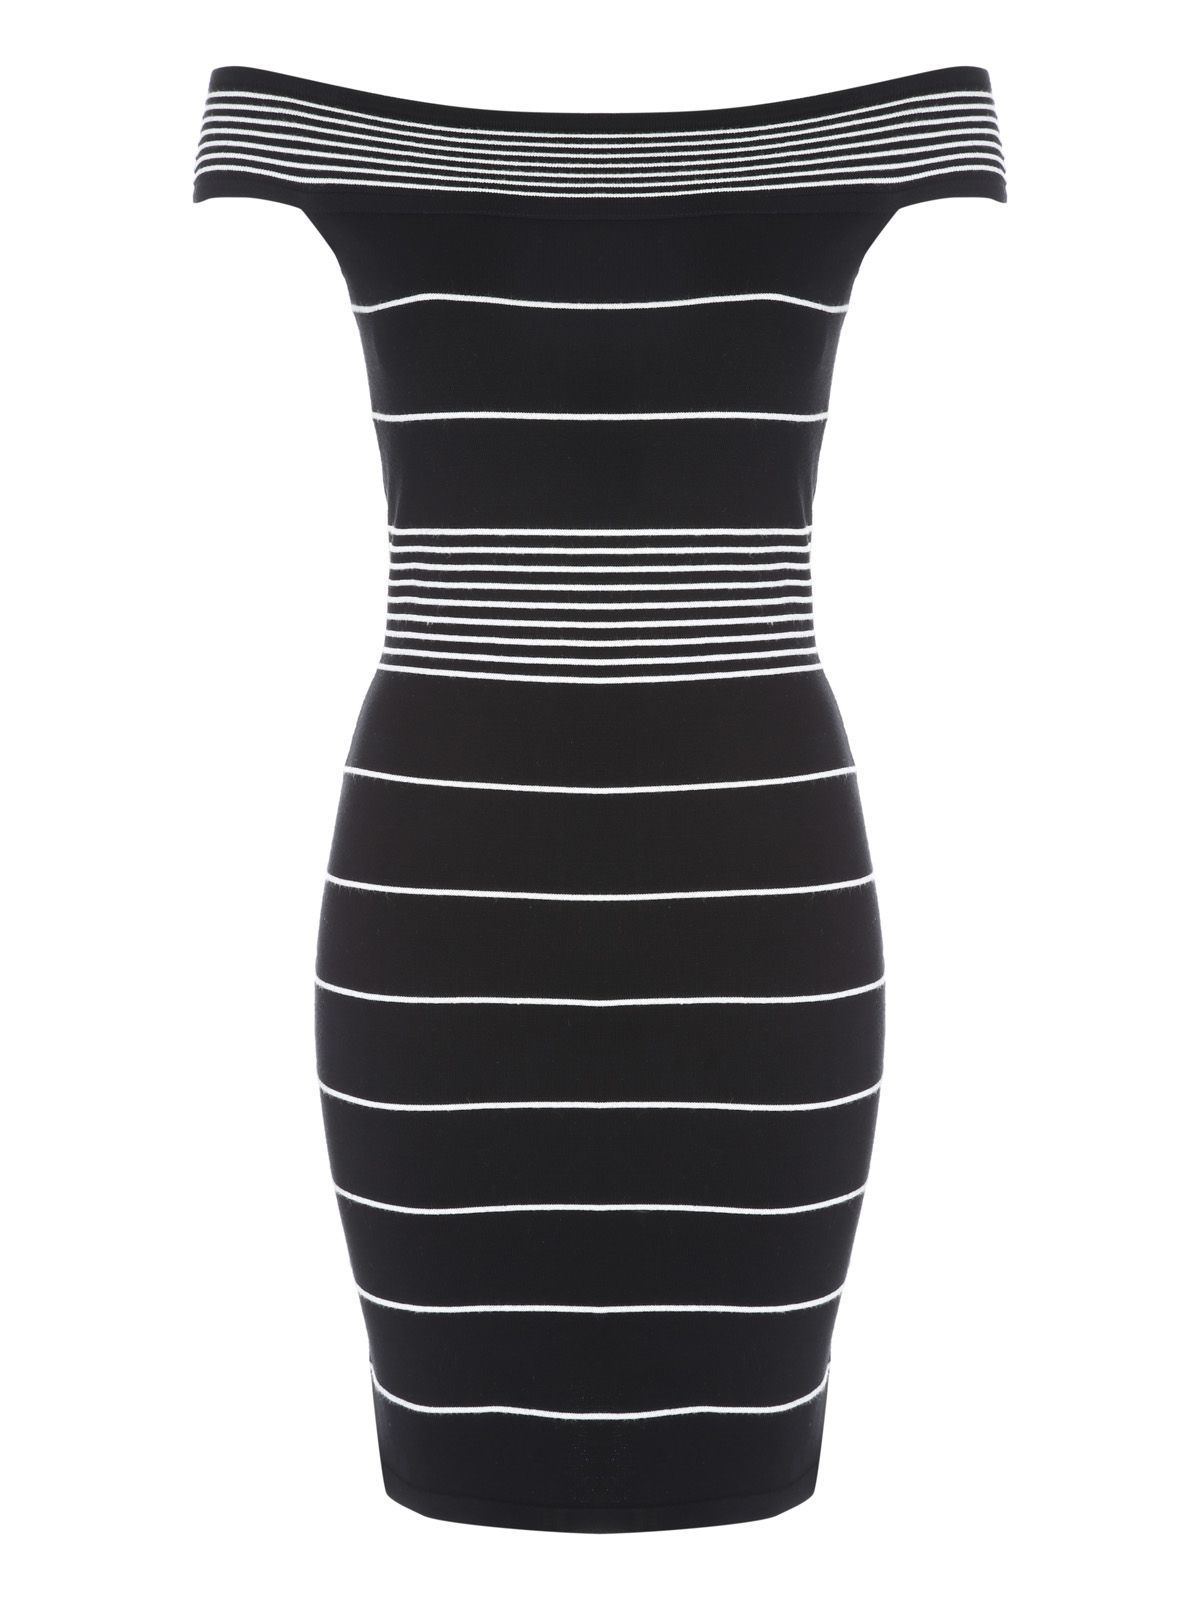 Jane Norman Stripe Off The Shoulder Jumper Dress, Black/White